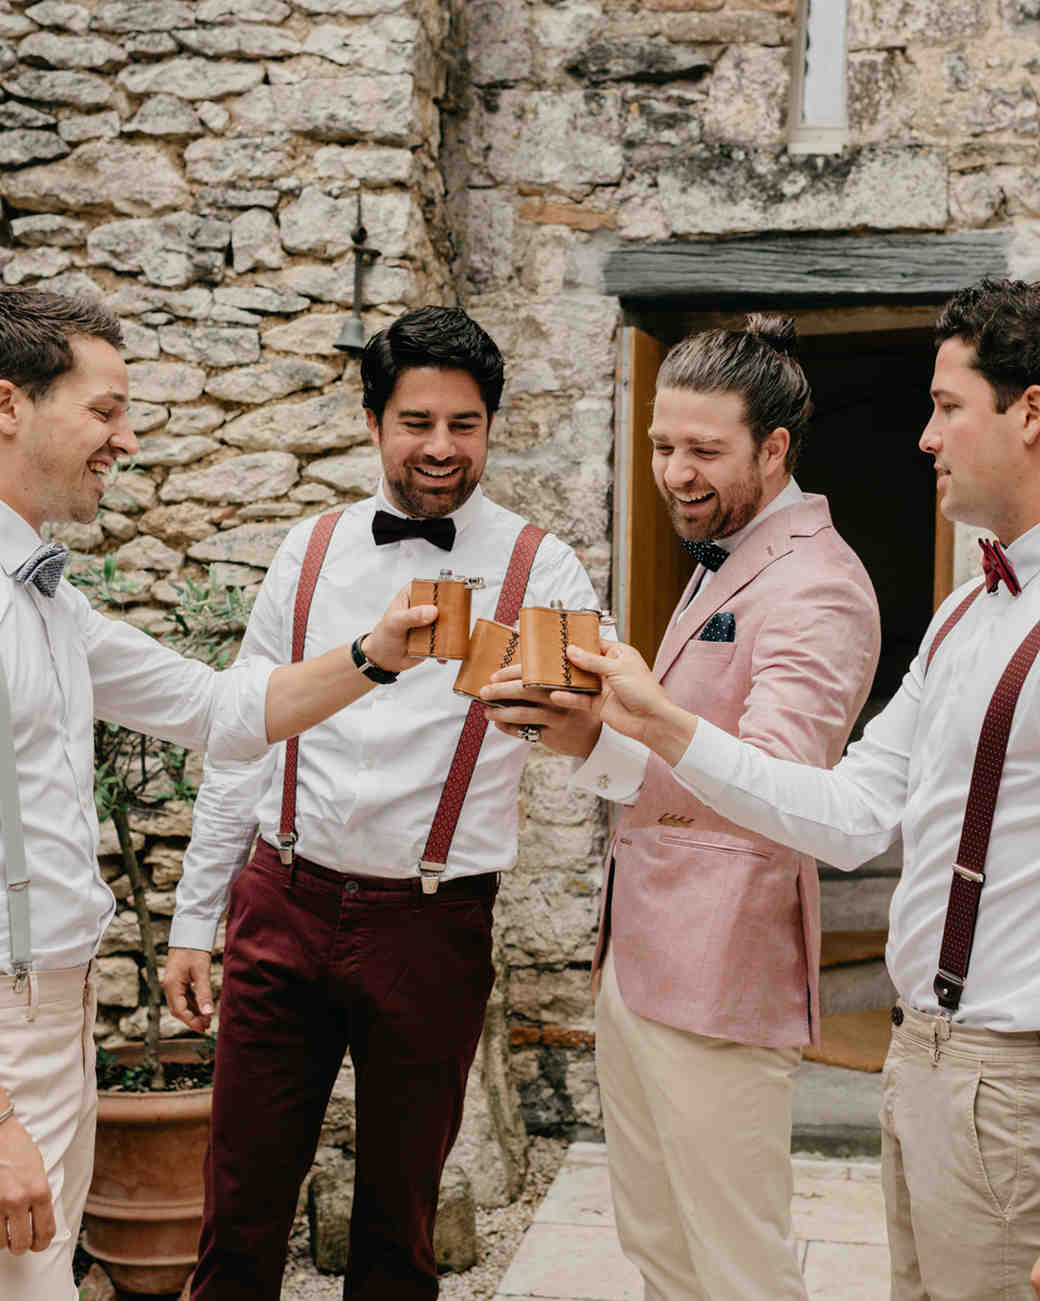 male wedding wedding guests cheers with flasks